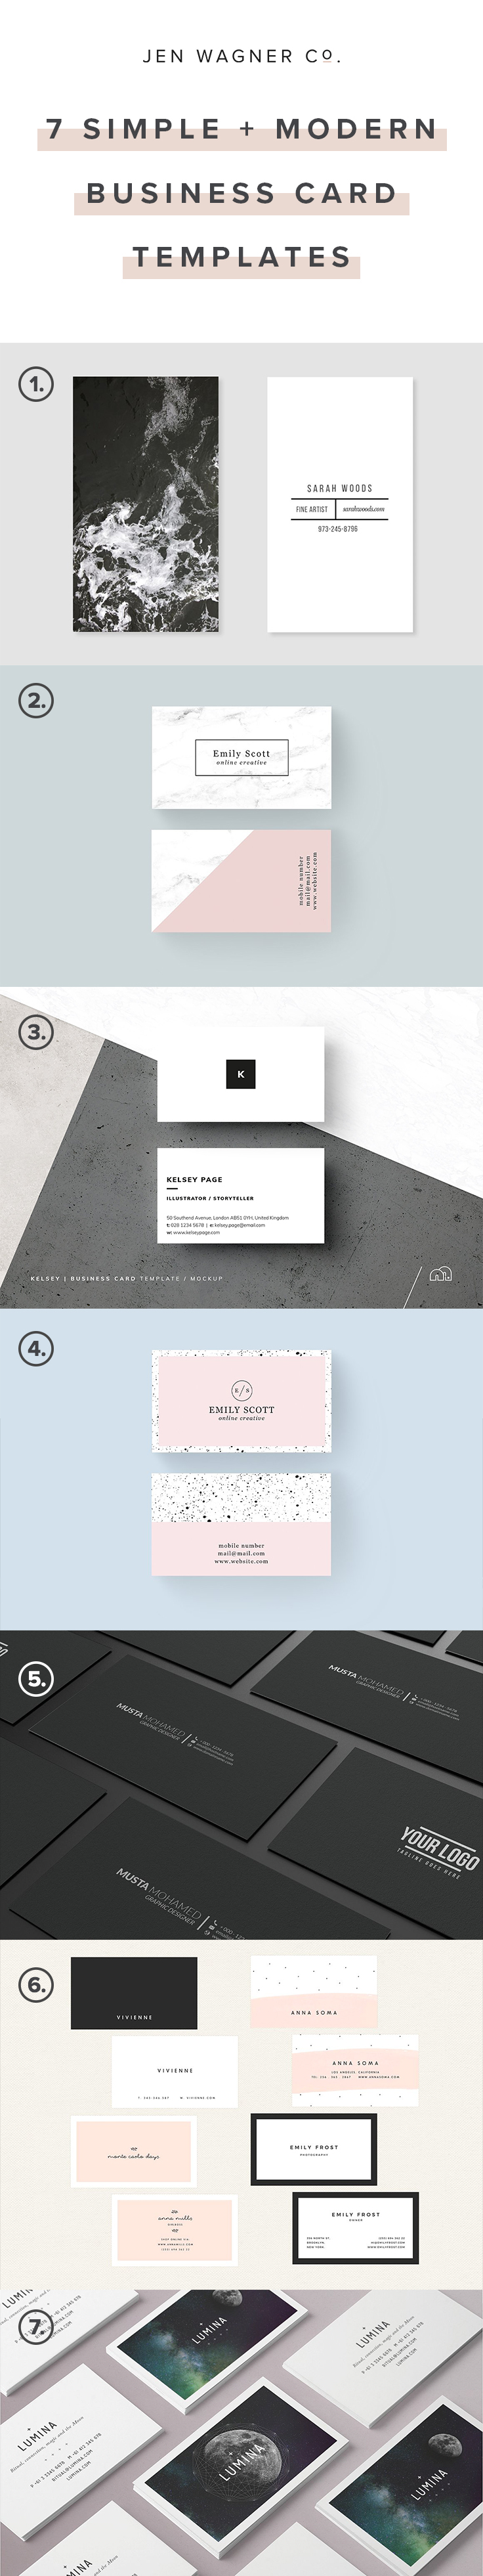 7 of my favorite modern business card templates jen wagner co 7 simple modern business card templatesg fbccfo Choice Image